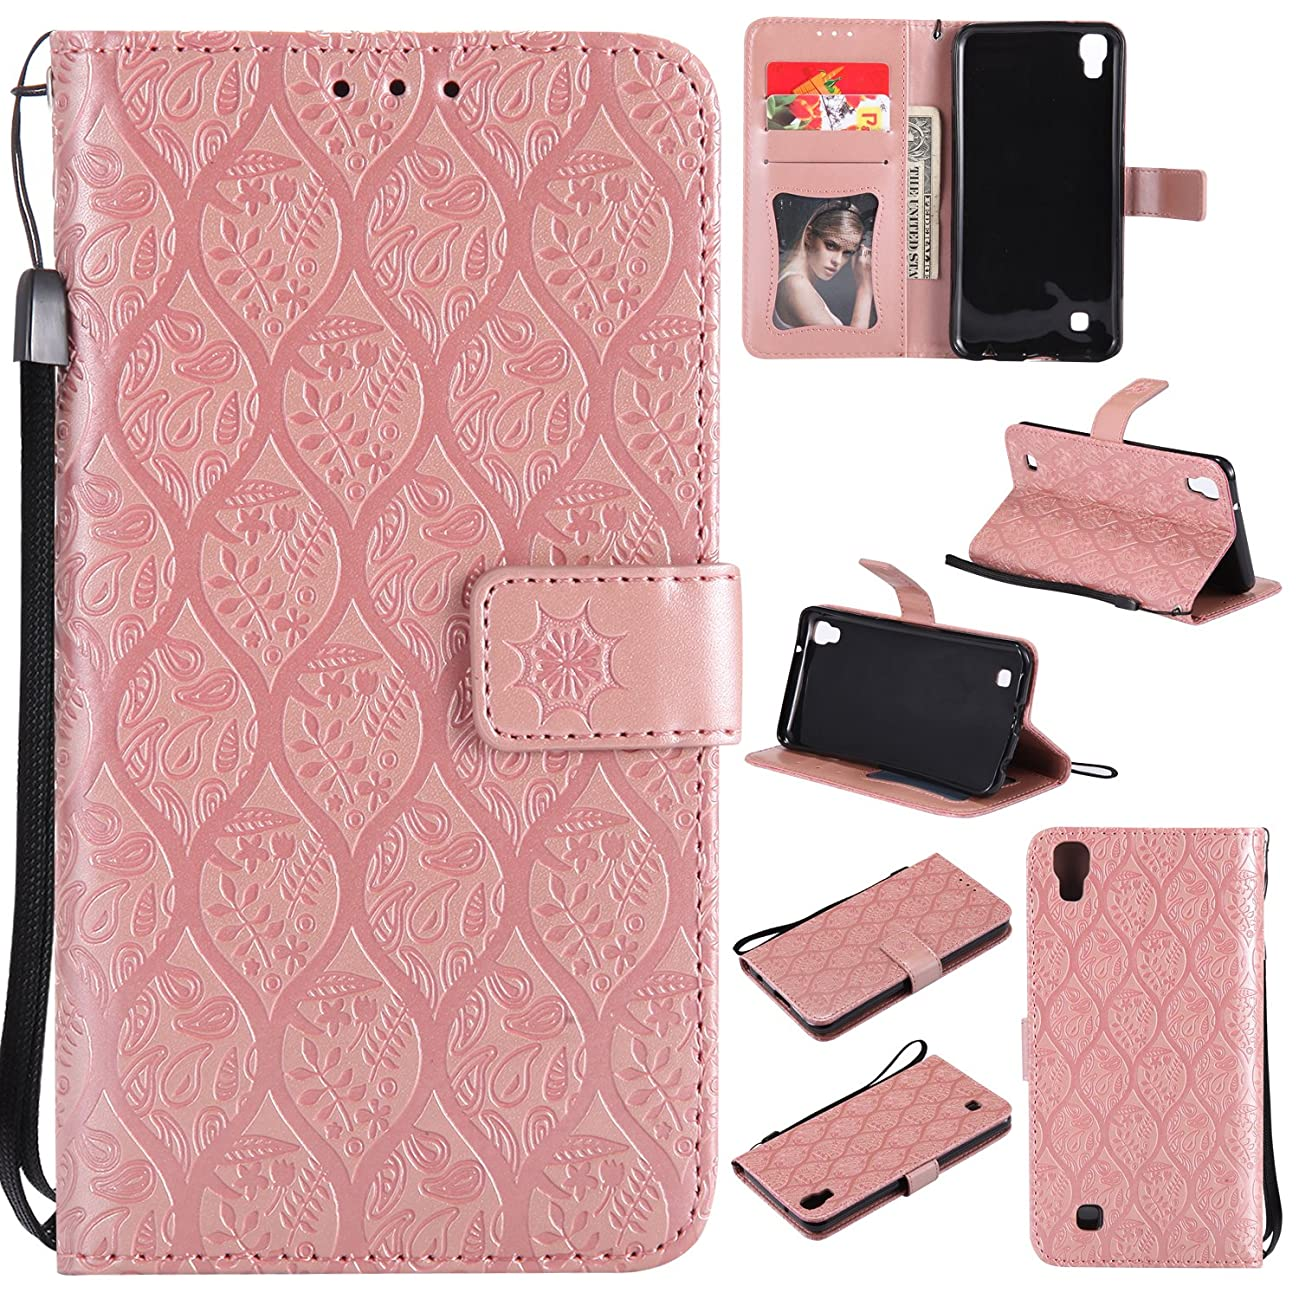 NEXCURIO LG X Power Wallet Case with Card Holder Folding Kickstand Leather Case Flip Cover for LG X Power - NEYYO10685 Rose Gold